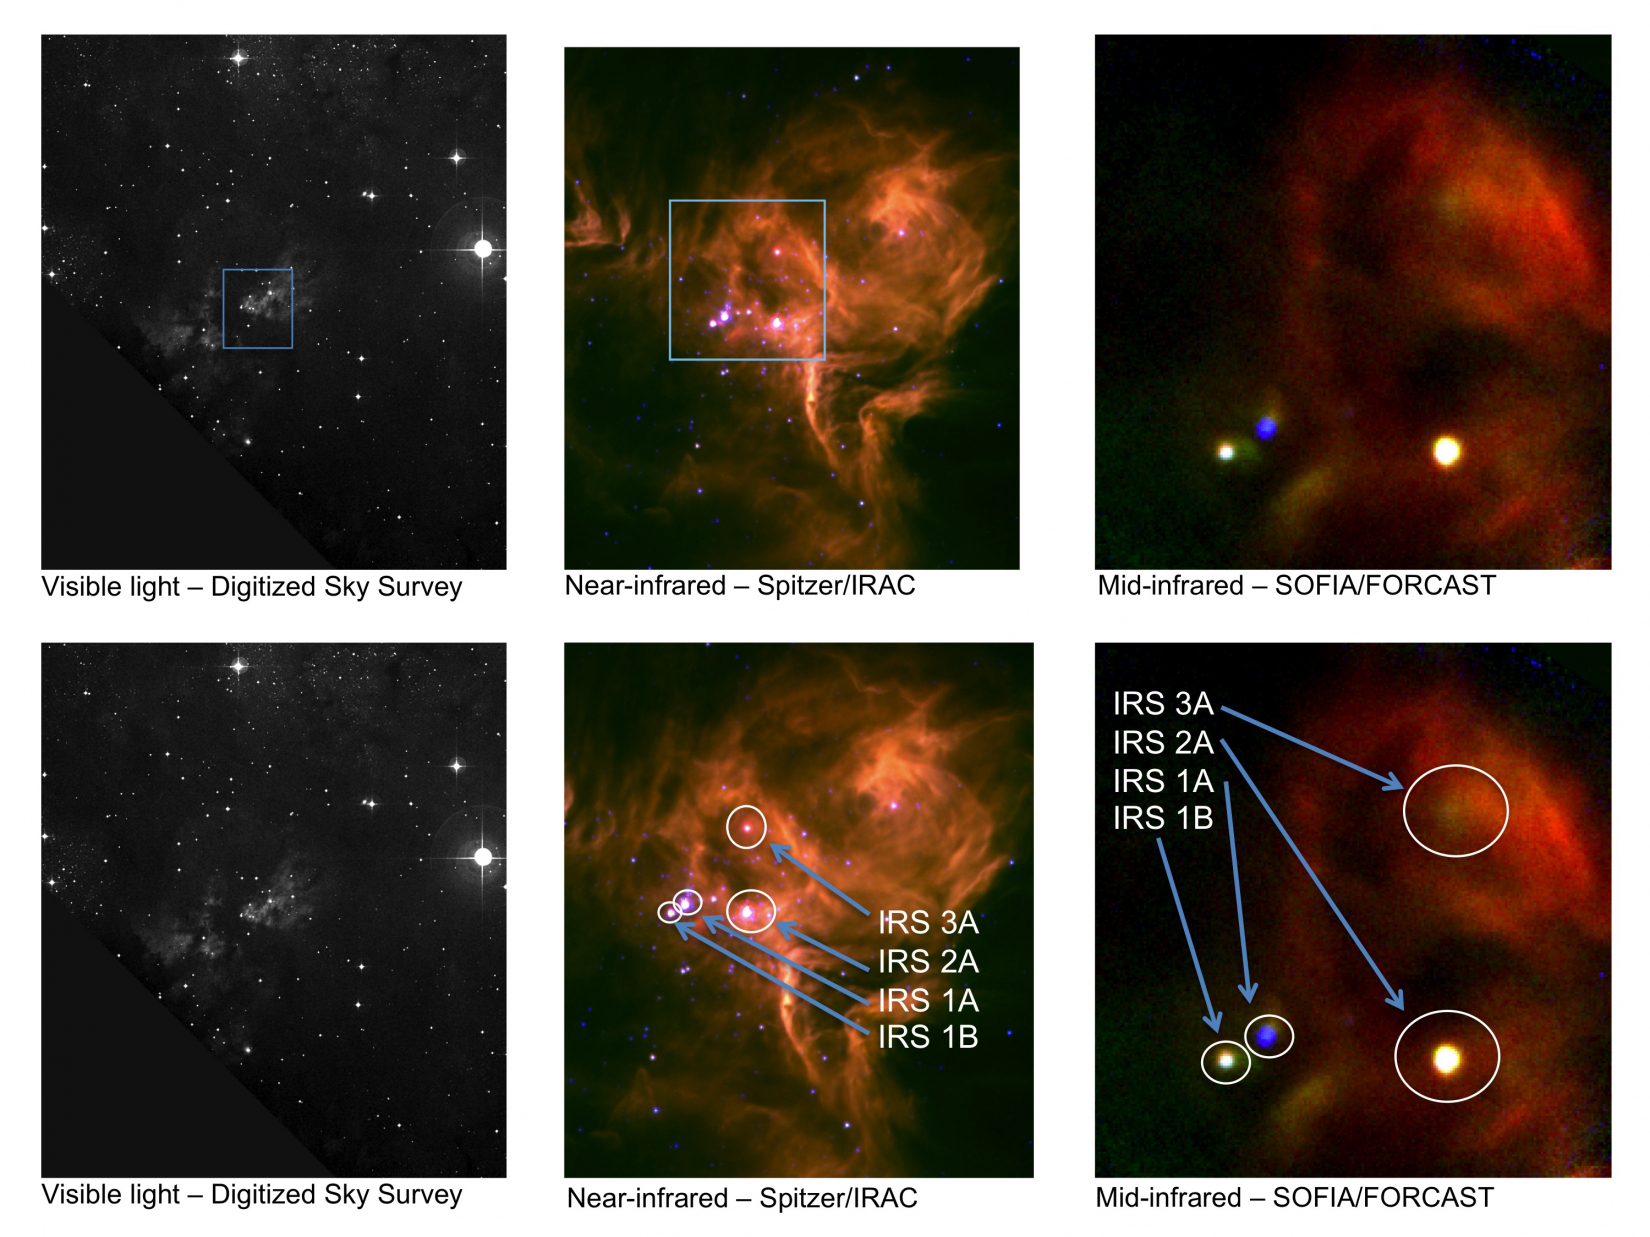 Comparison of images of the W40 star-forming region made at wavelengths ranging from visible light to far infrared